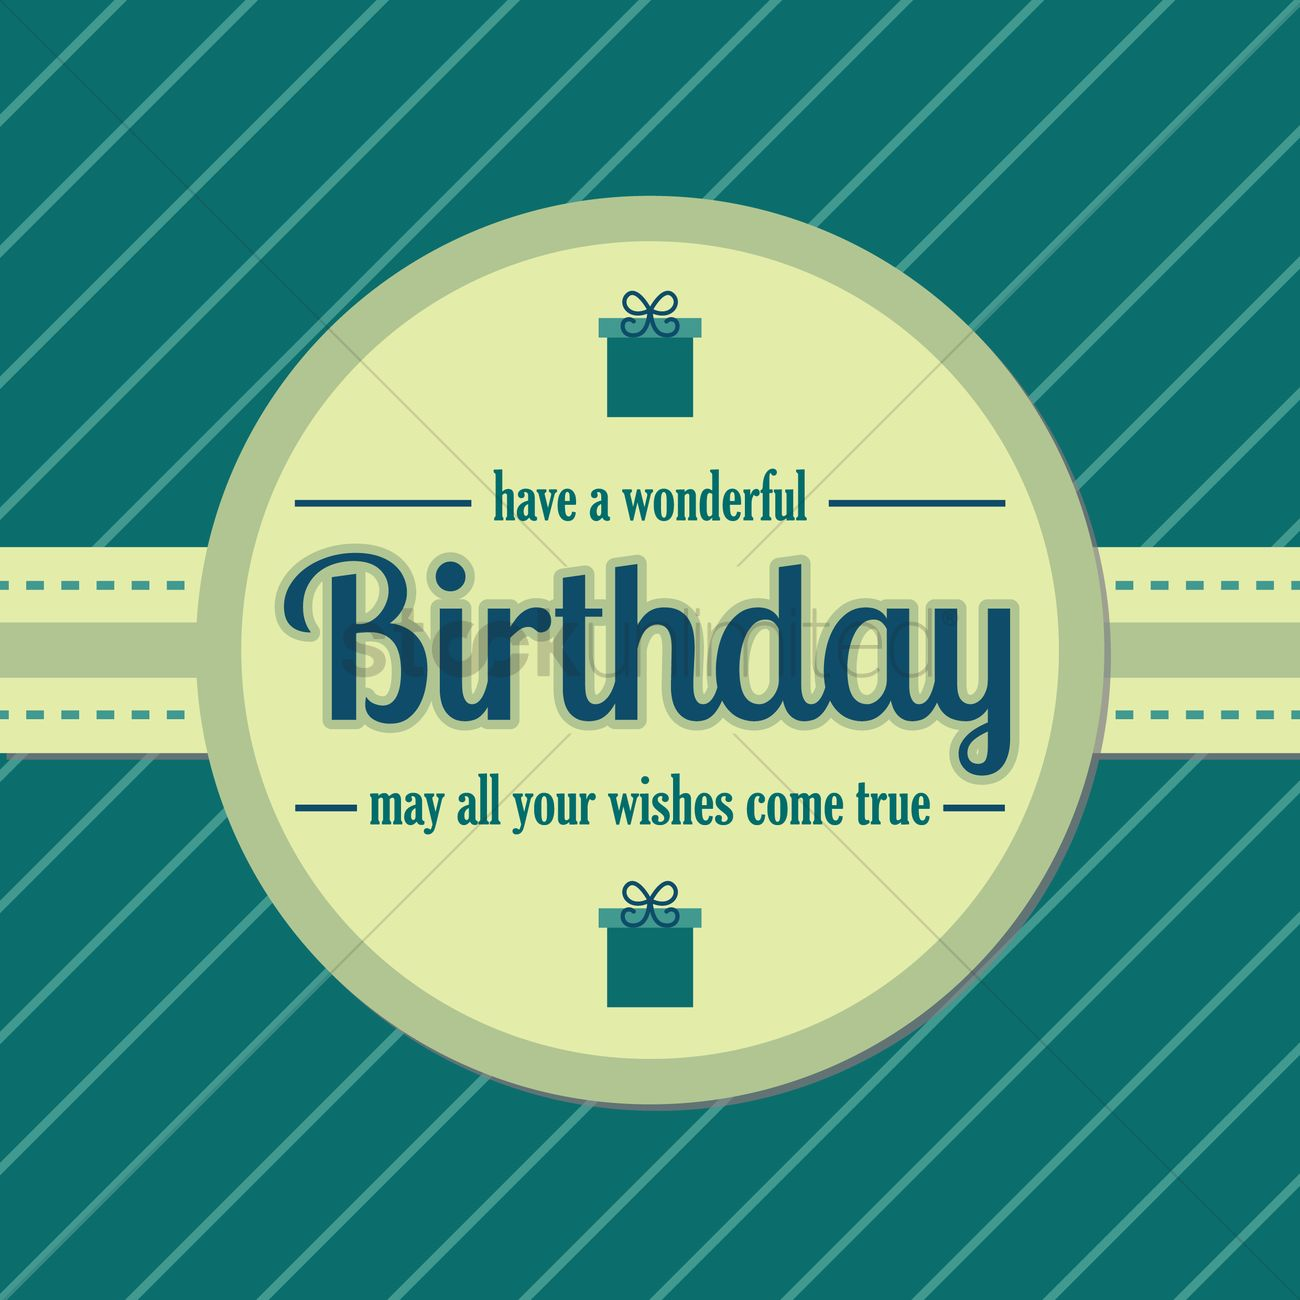 Happy Birthday Wishes Vector Image 1791457 Stockunlimited